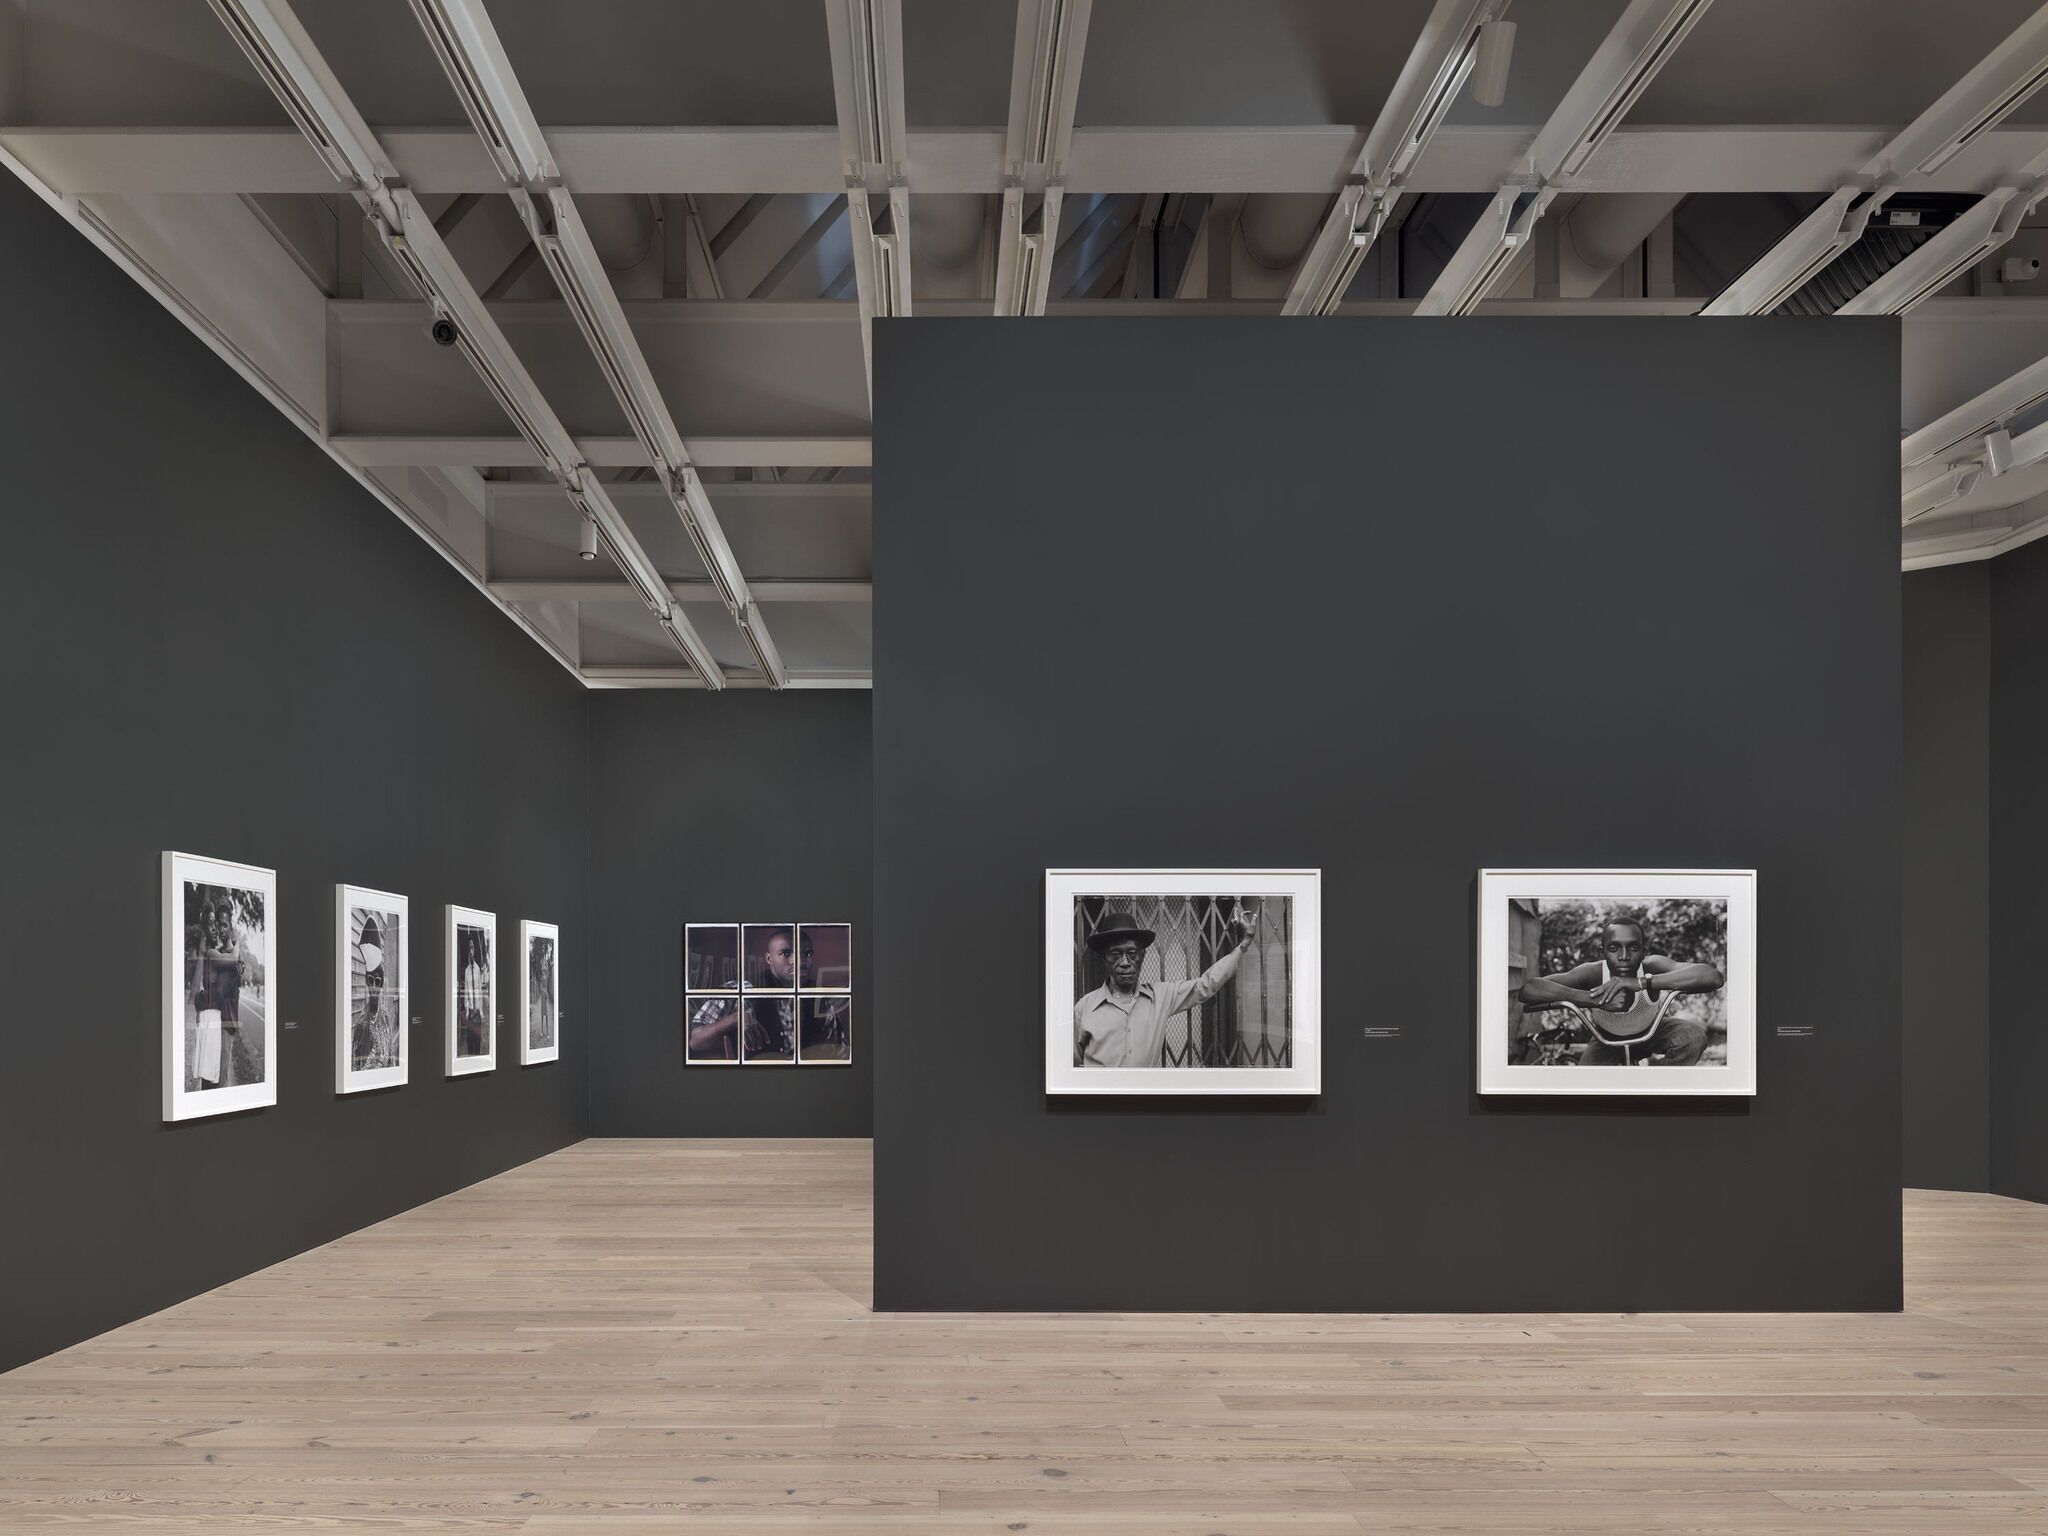 A main exhibition room of the Whitney with pieces mounted against black walls.